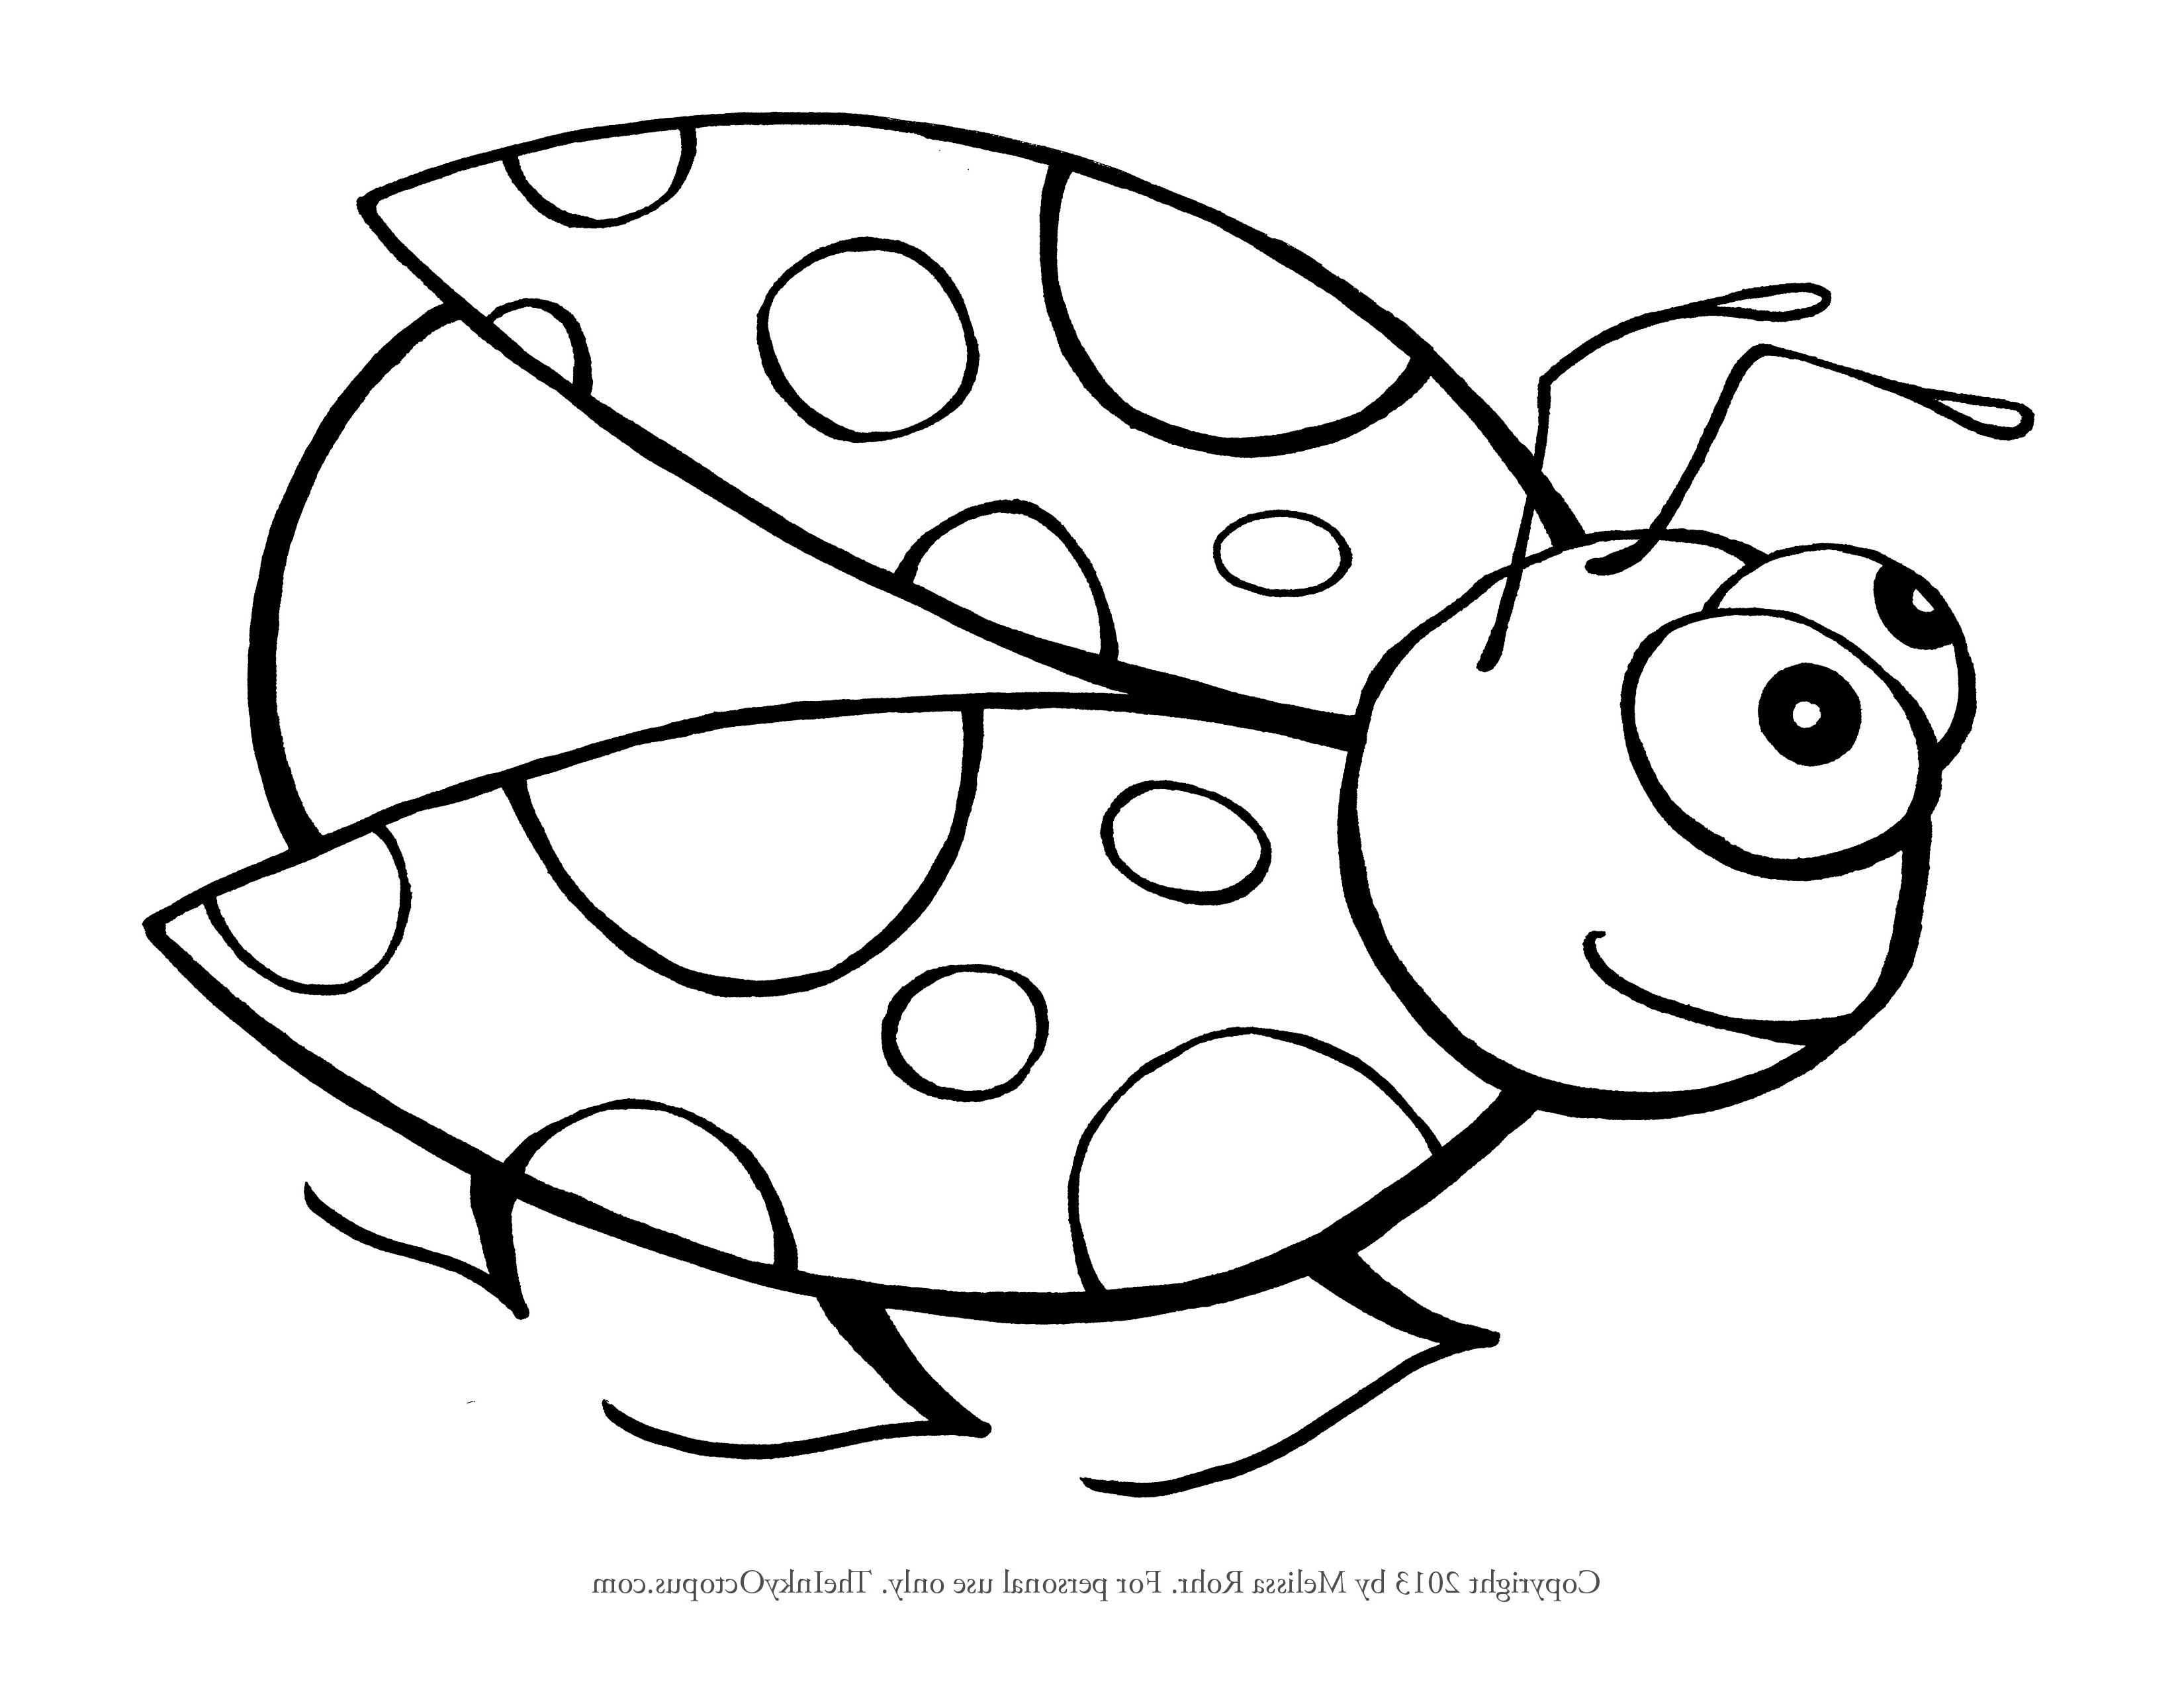 Ladybug Drawing Pictures at GetDrawings.com | Free for ...